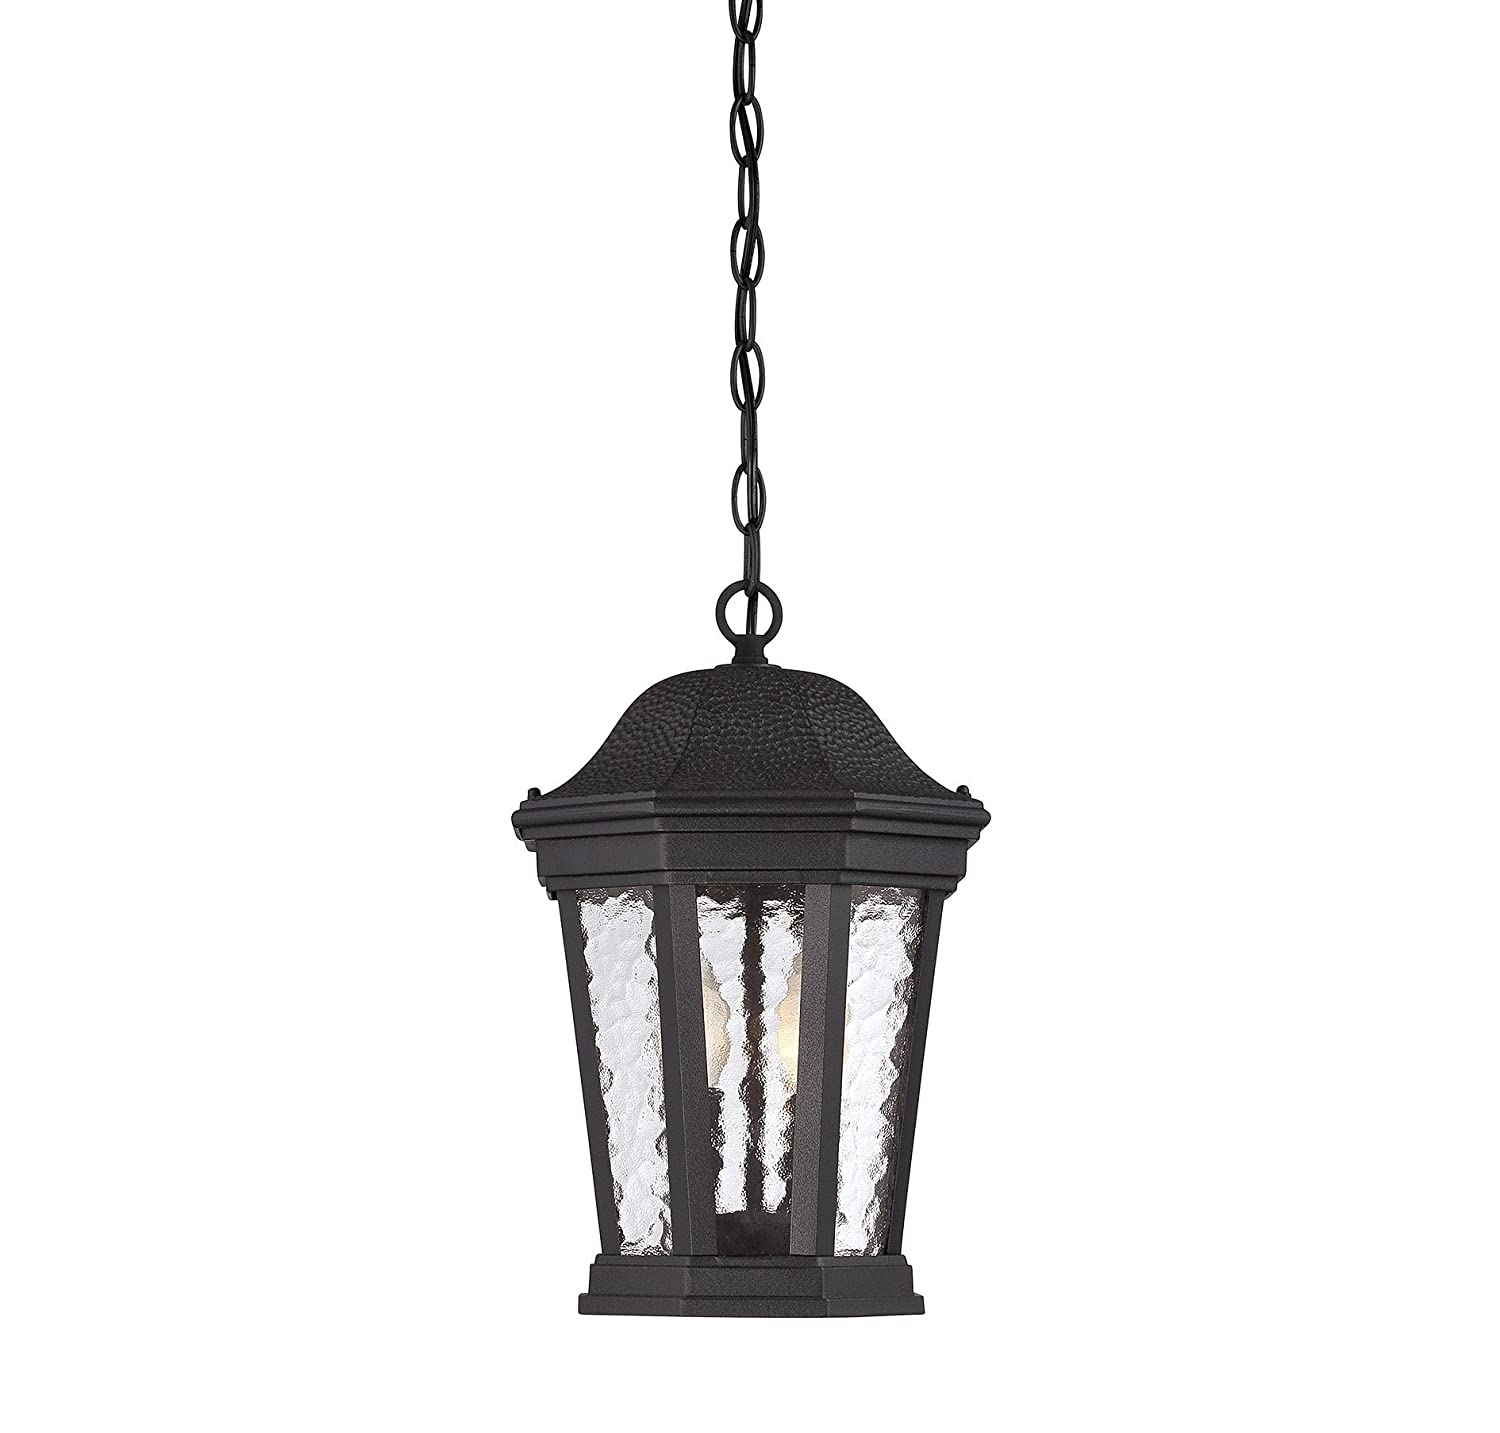 Savoy House 5-5084-BK Hampden Outdoor Post Lantern by Savoy House B00STHT2UK